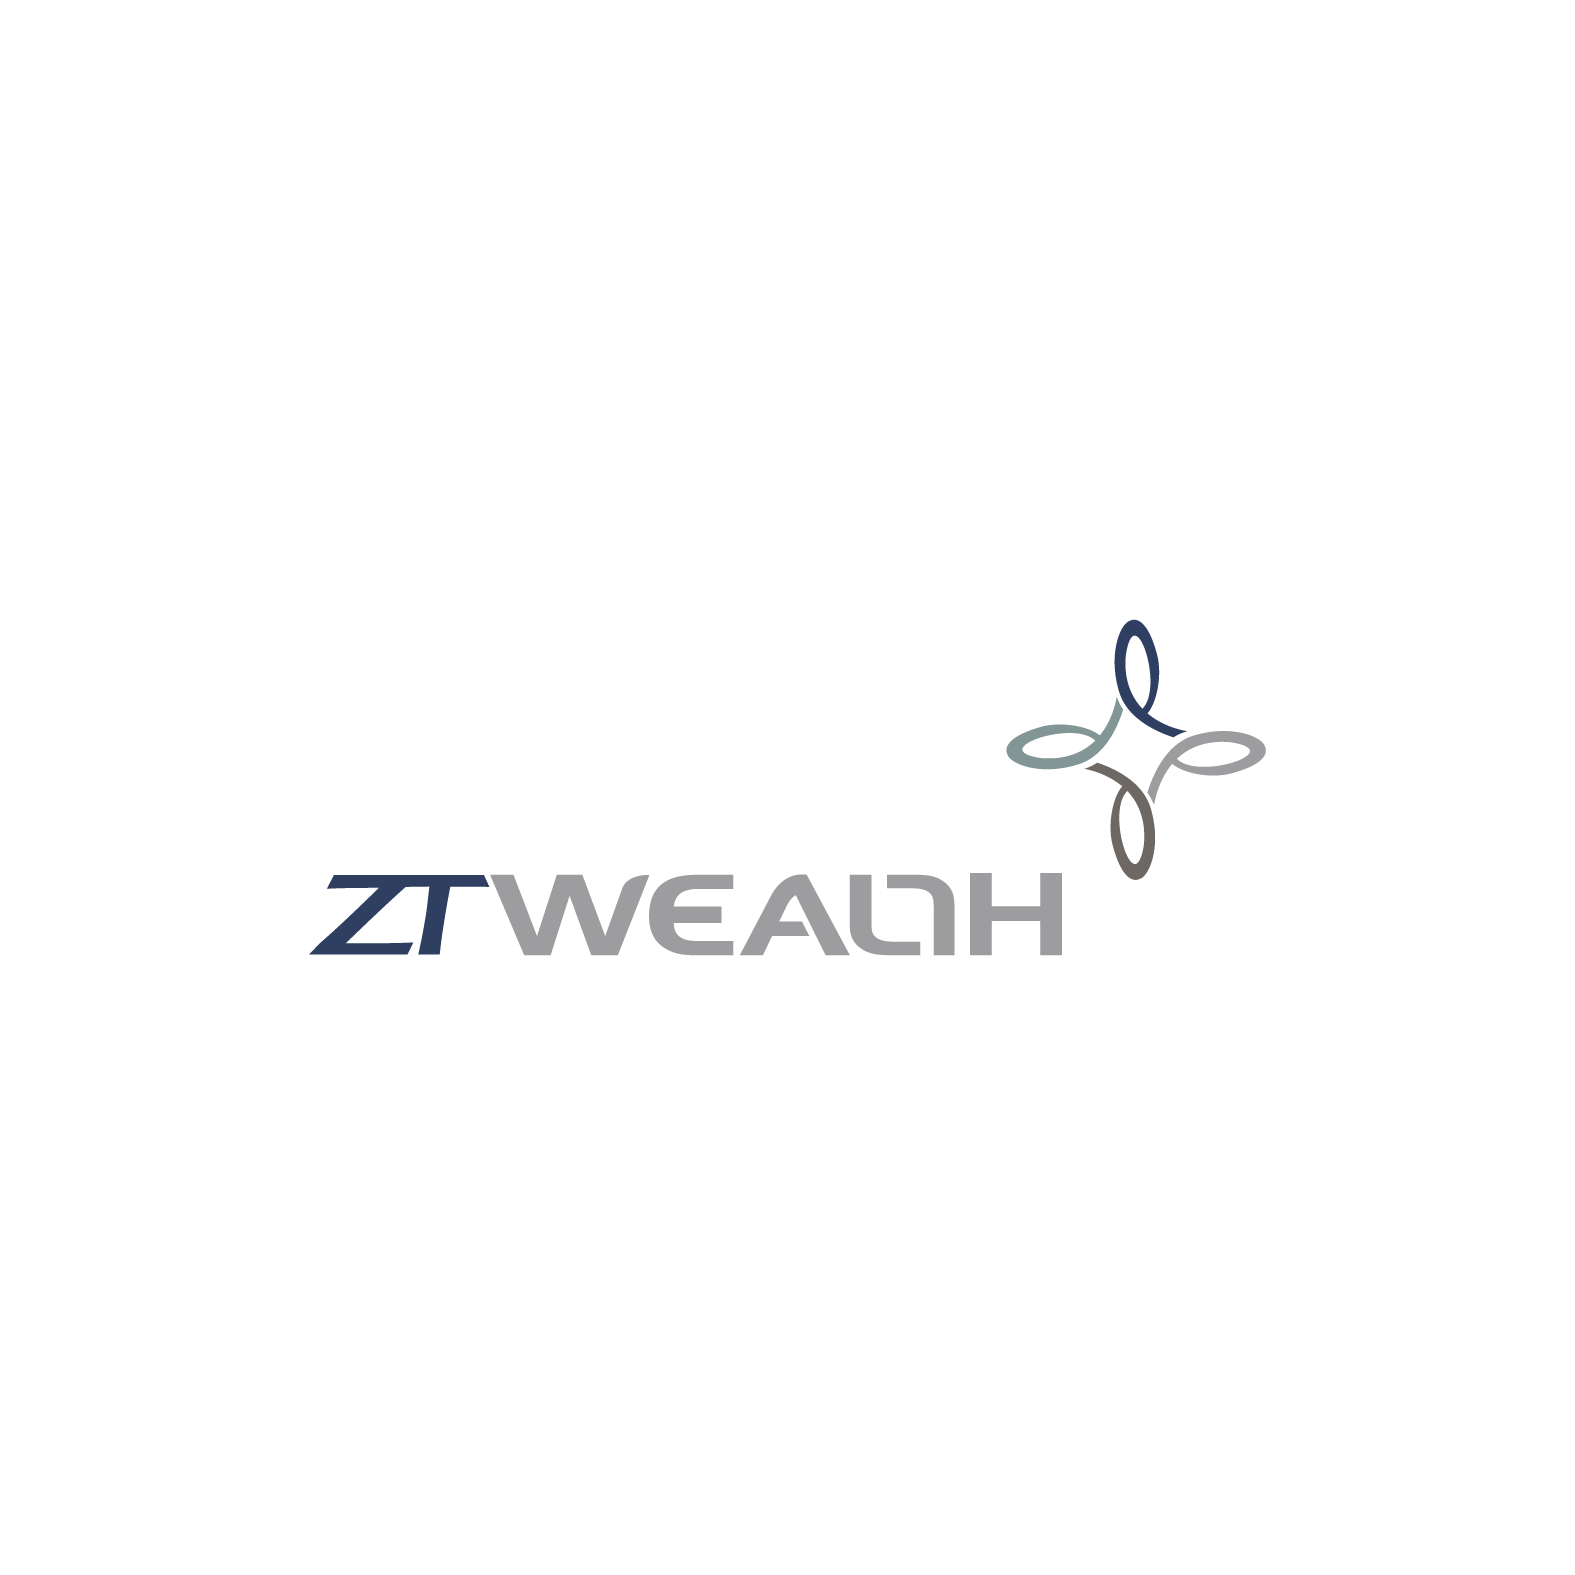 ZT Wealth Goes Nationwide by Joining With APPNA | Newswire